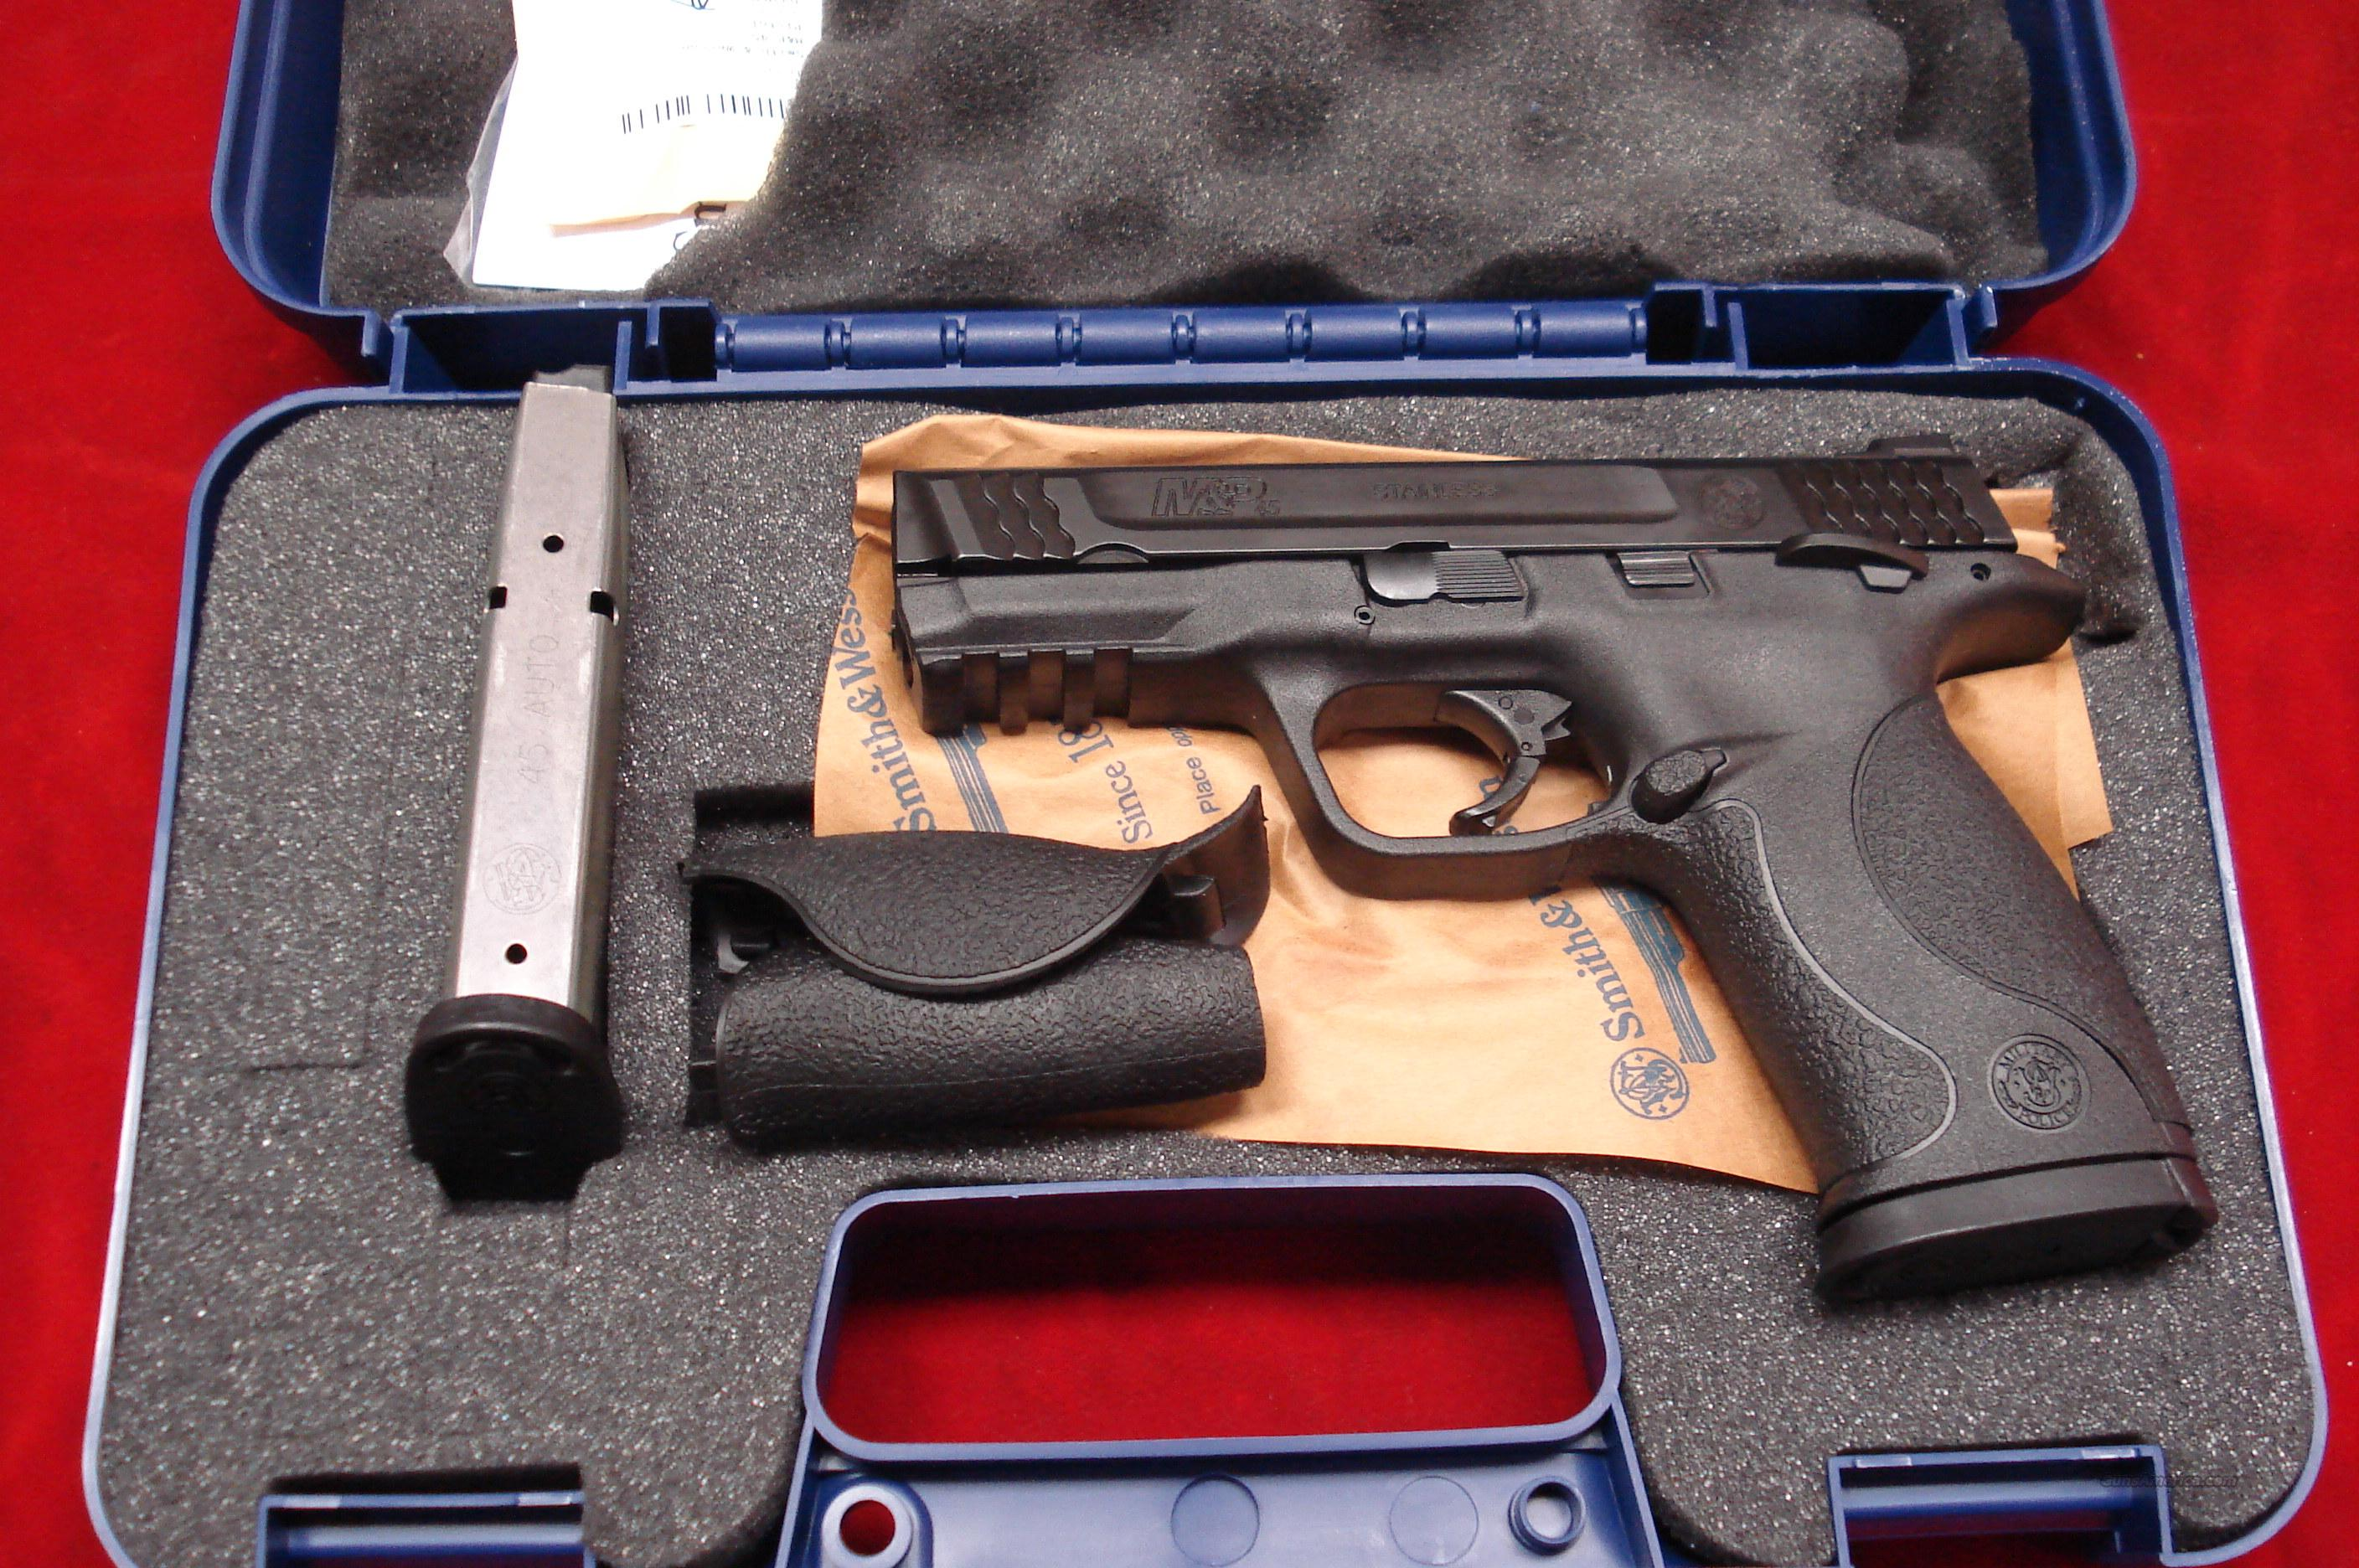 "SMITH AND WESSON M&P 45ACP 4"" W/THUMB SAFETY LNIB  Guns > Pistols > Smith & Wesson Pistols - Autos > Polymer Frame"